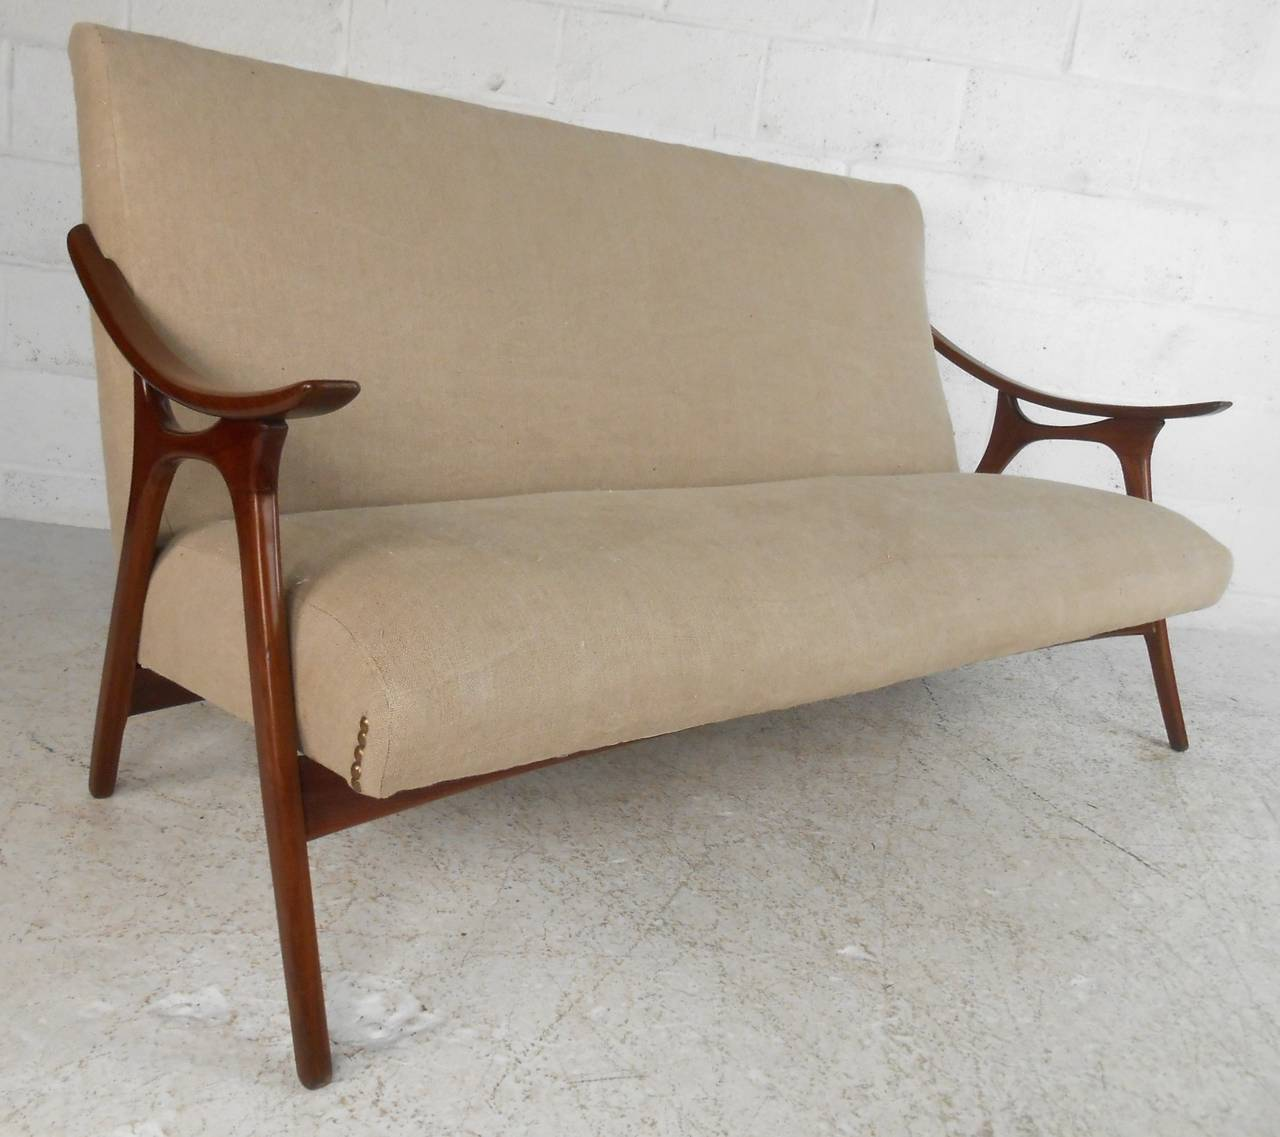 This unique midcentury sofa features stylish curved armrests, original studded upholstery, and a unique finish. Please confirm item location (NY or NJ).